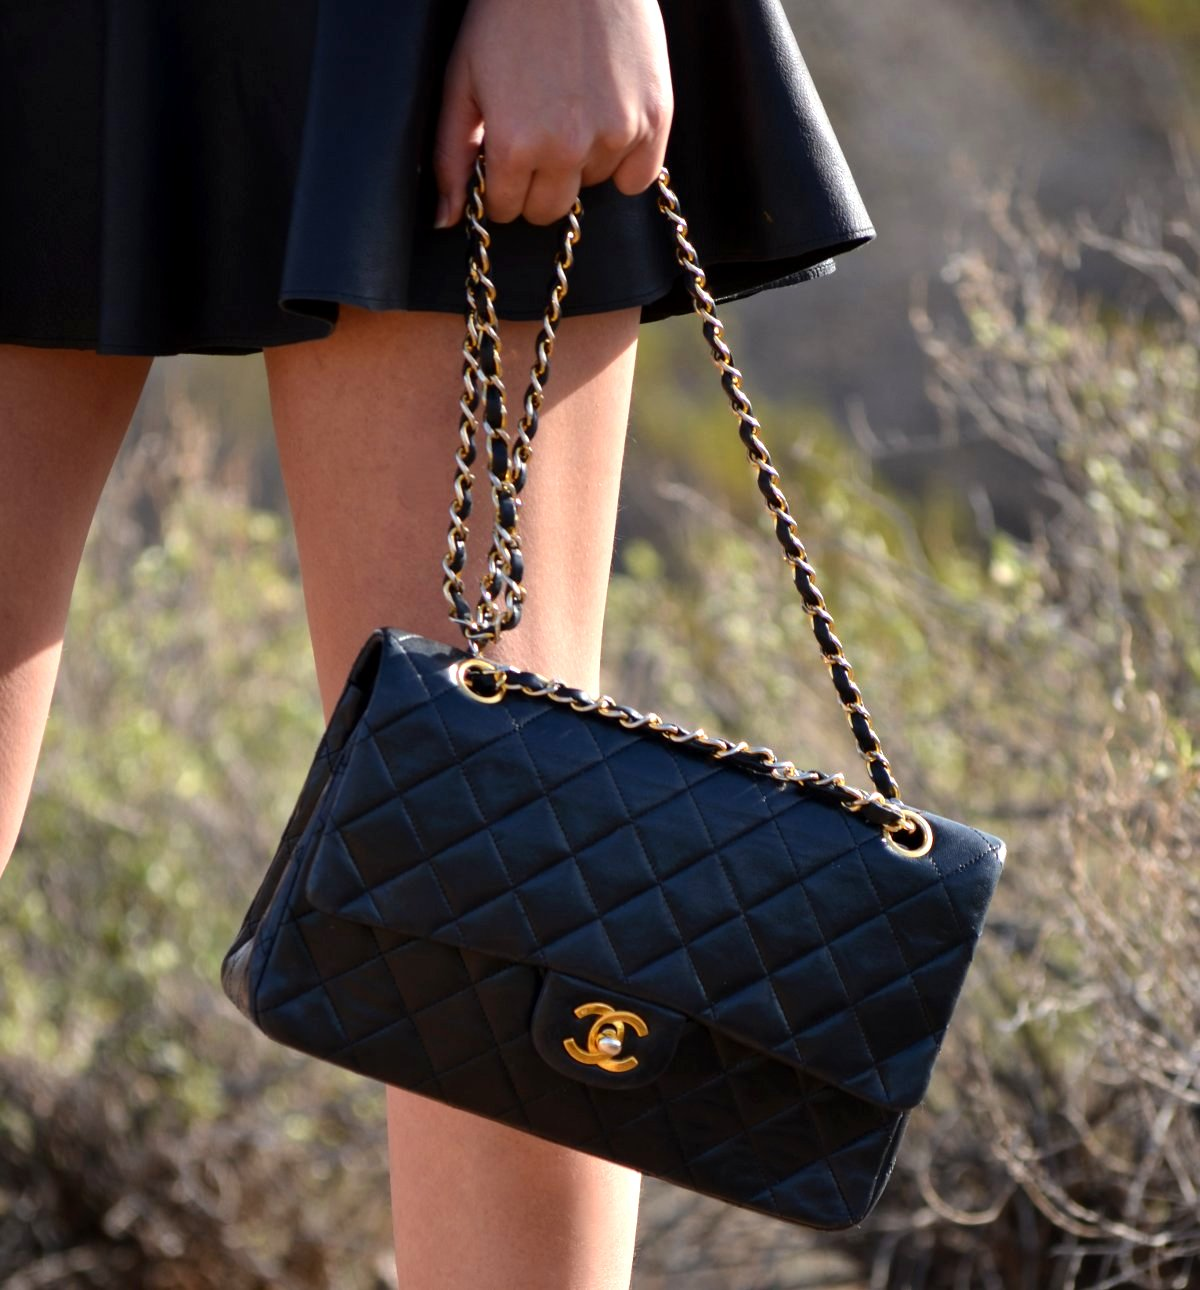 black vintage 2.55 double flap classic chanel bag